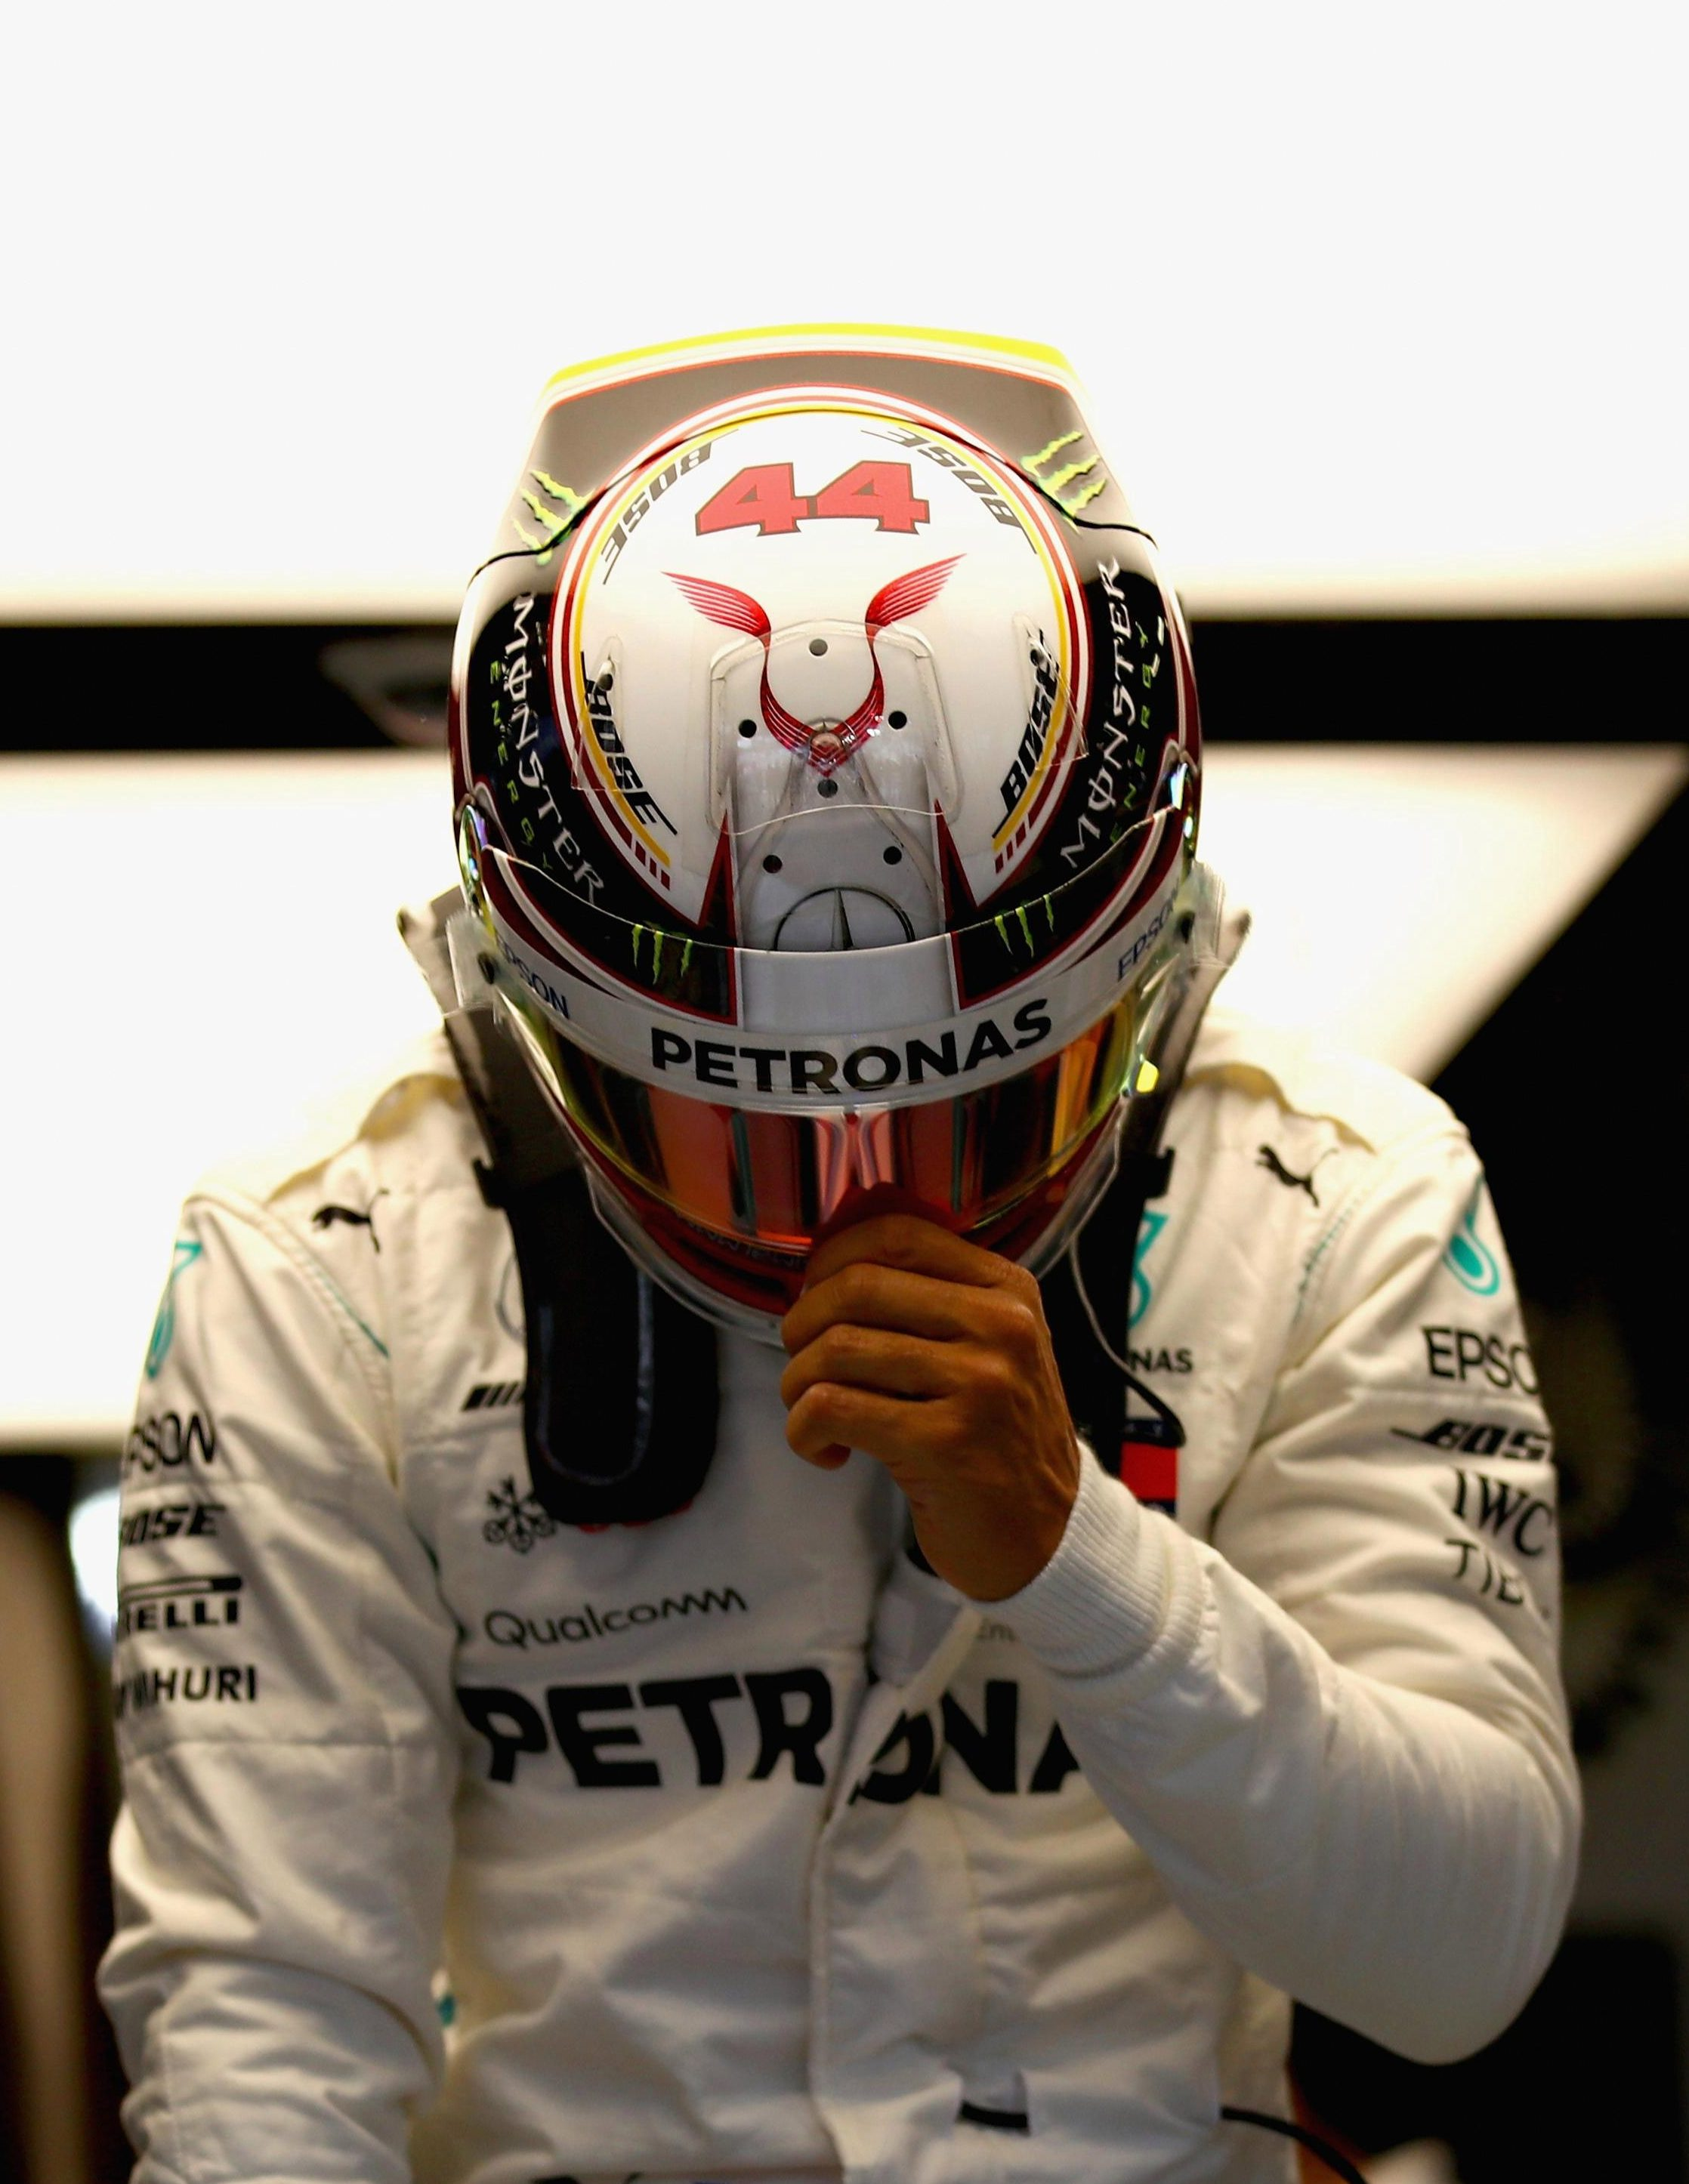 Hamilton is favourite to win Sunday's Grand Prix